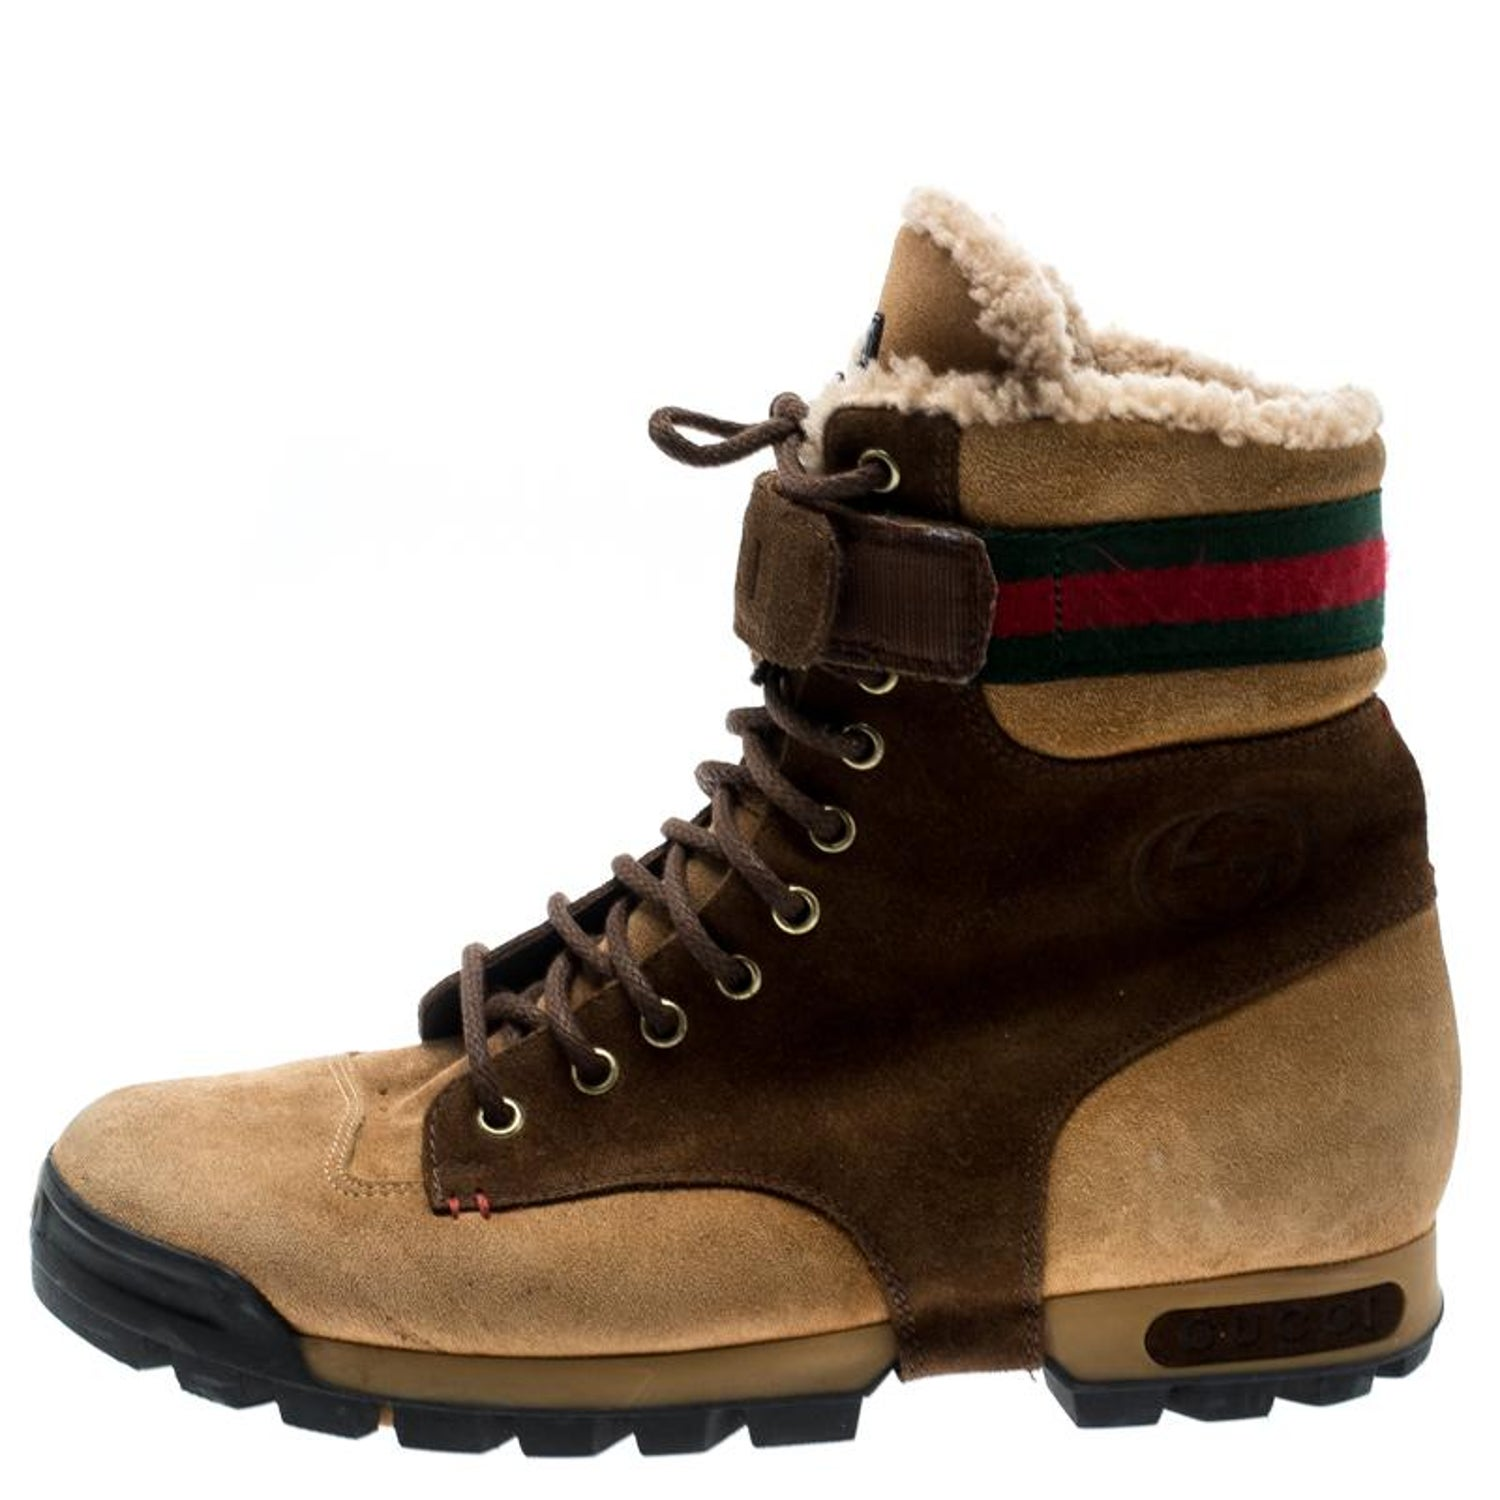 8c08e88c7 Gucci Beige/Brown Suede Lace Up Shearling Lined Combat Boots Size 42 For  Sale at 1stdibs